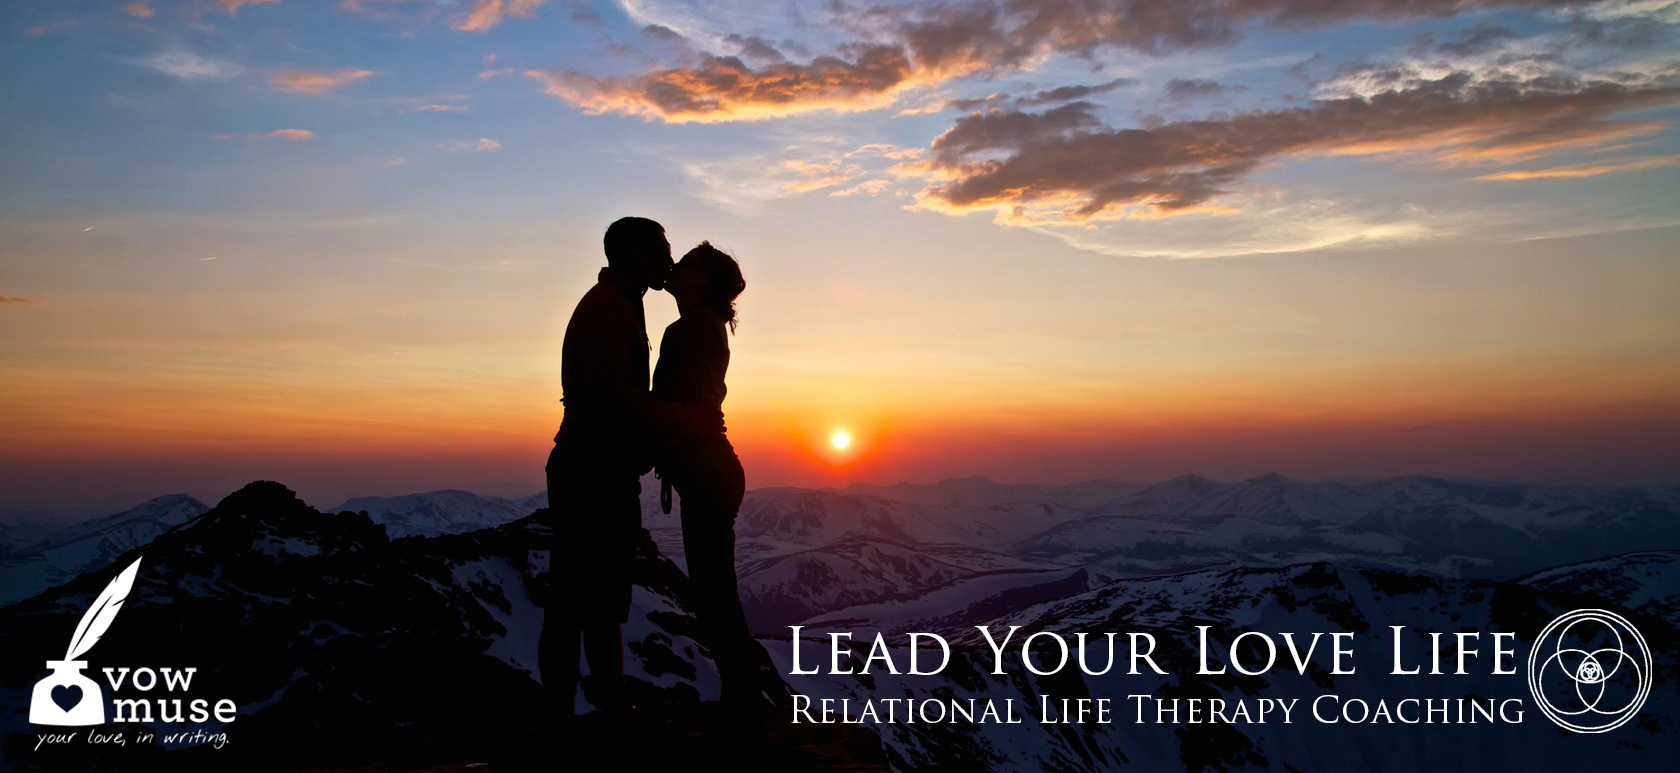 Lead Your Love Life premarital coaching vow muse